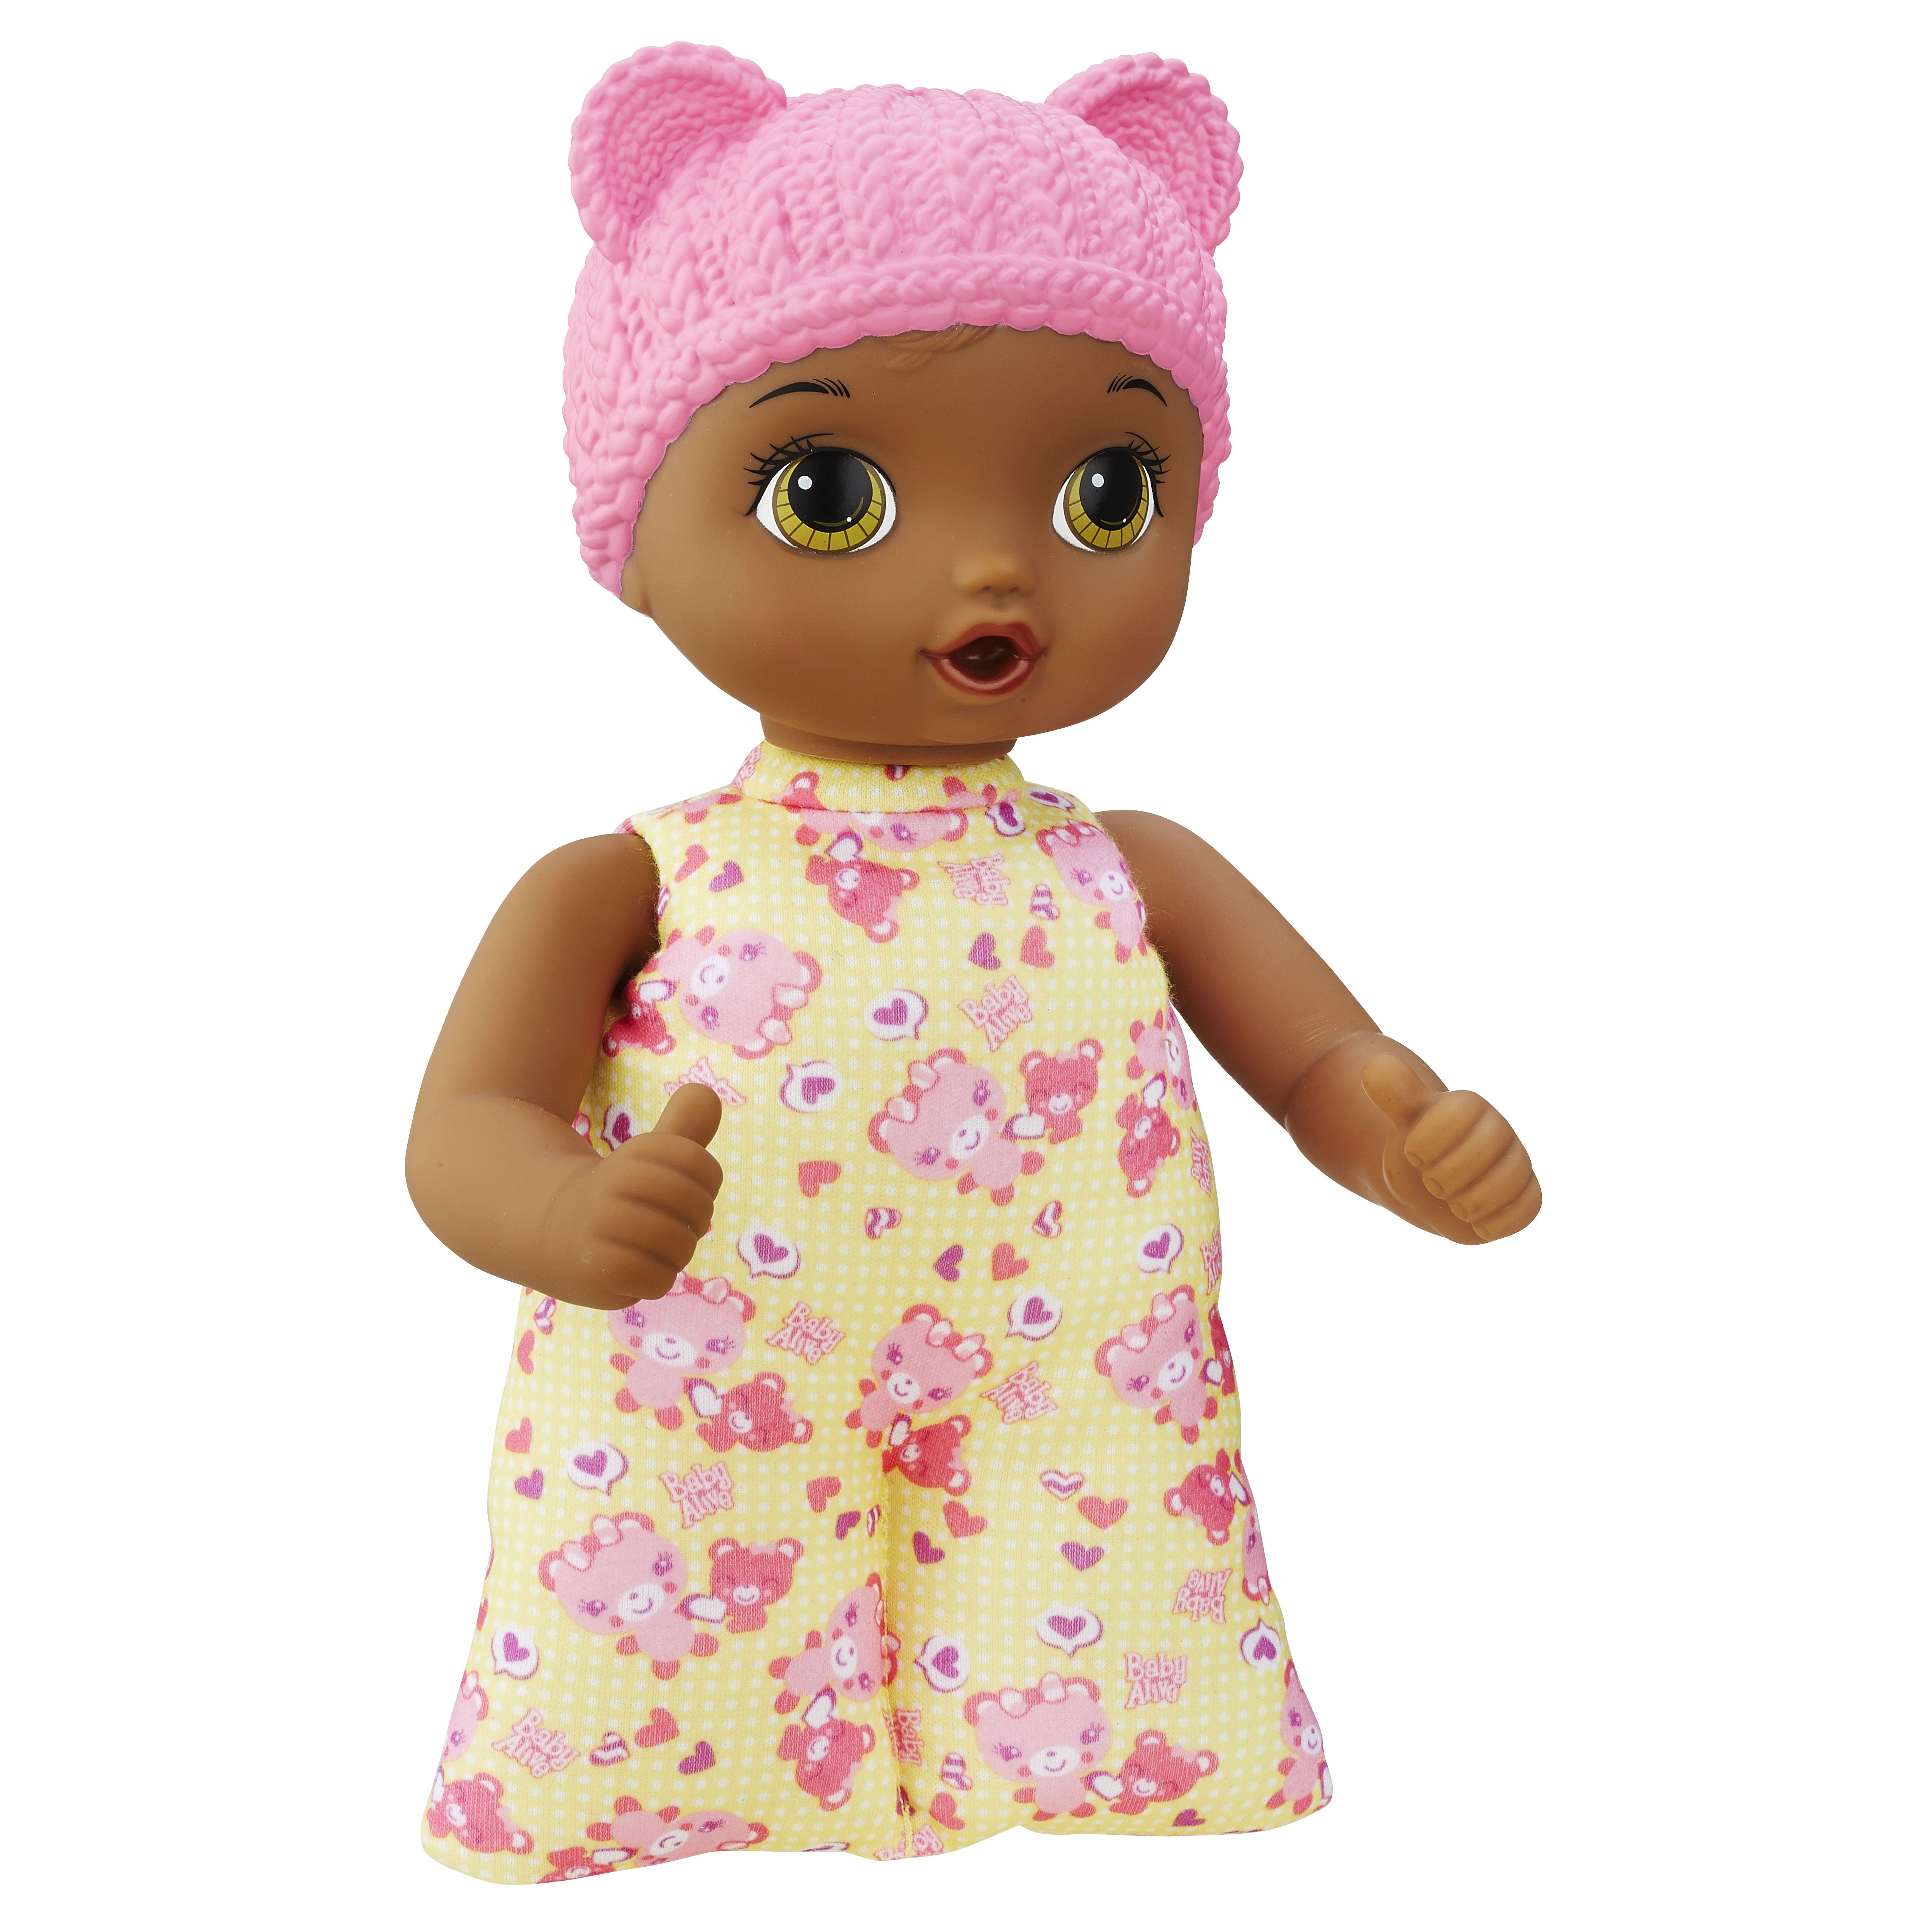 Great Baby Dolls for Toddlers